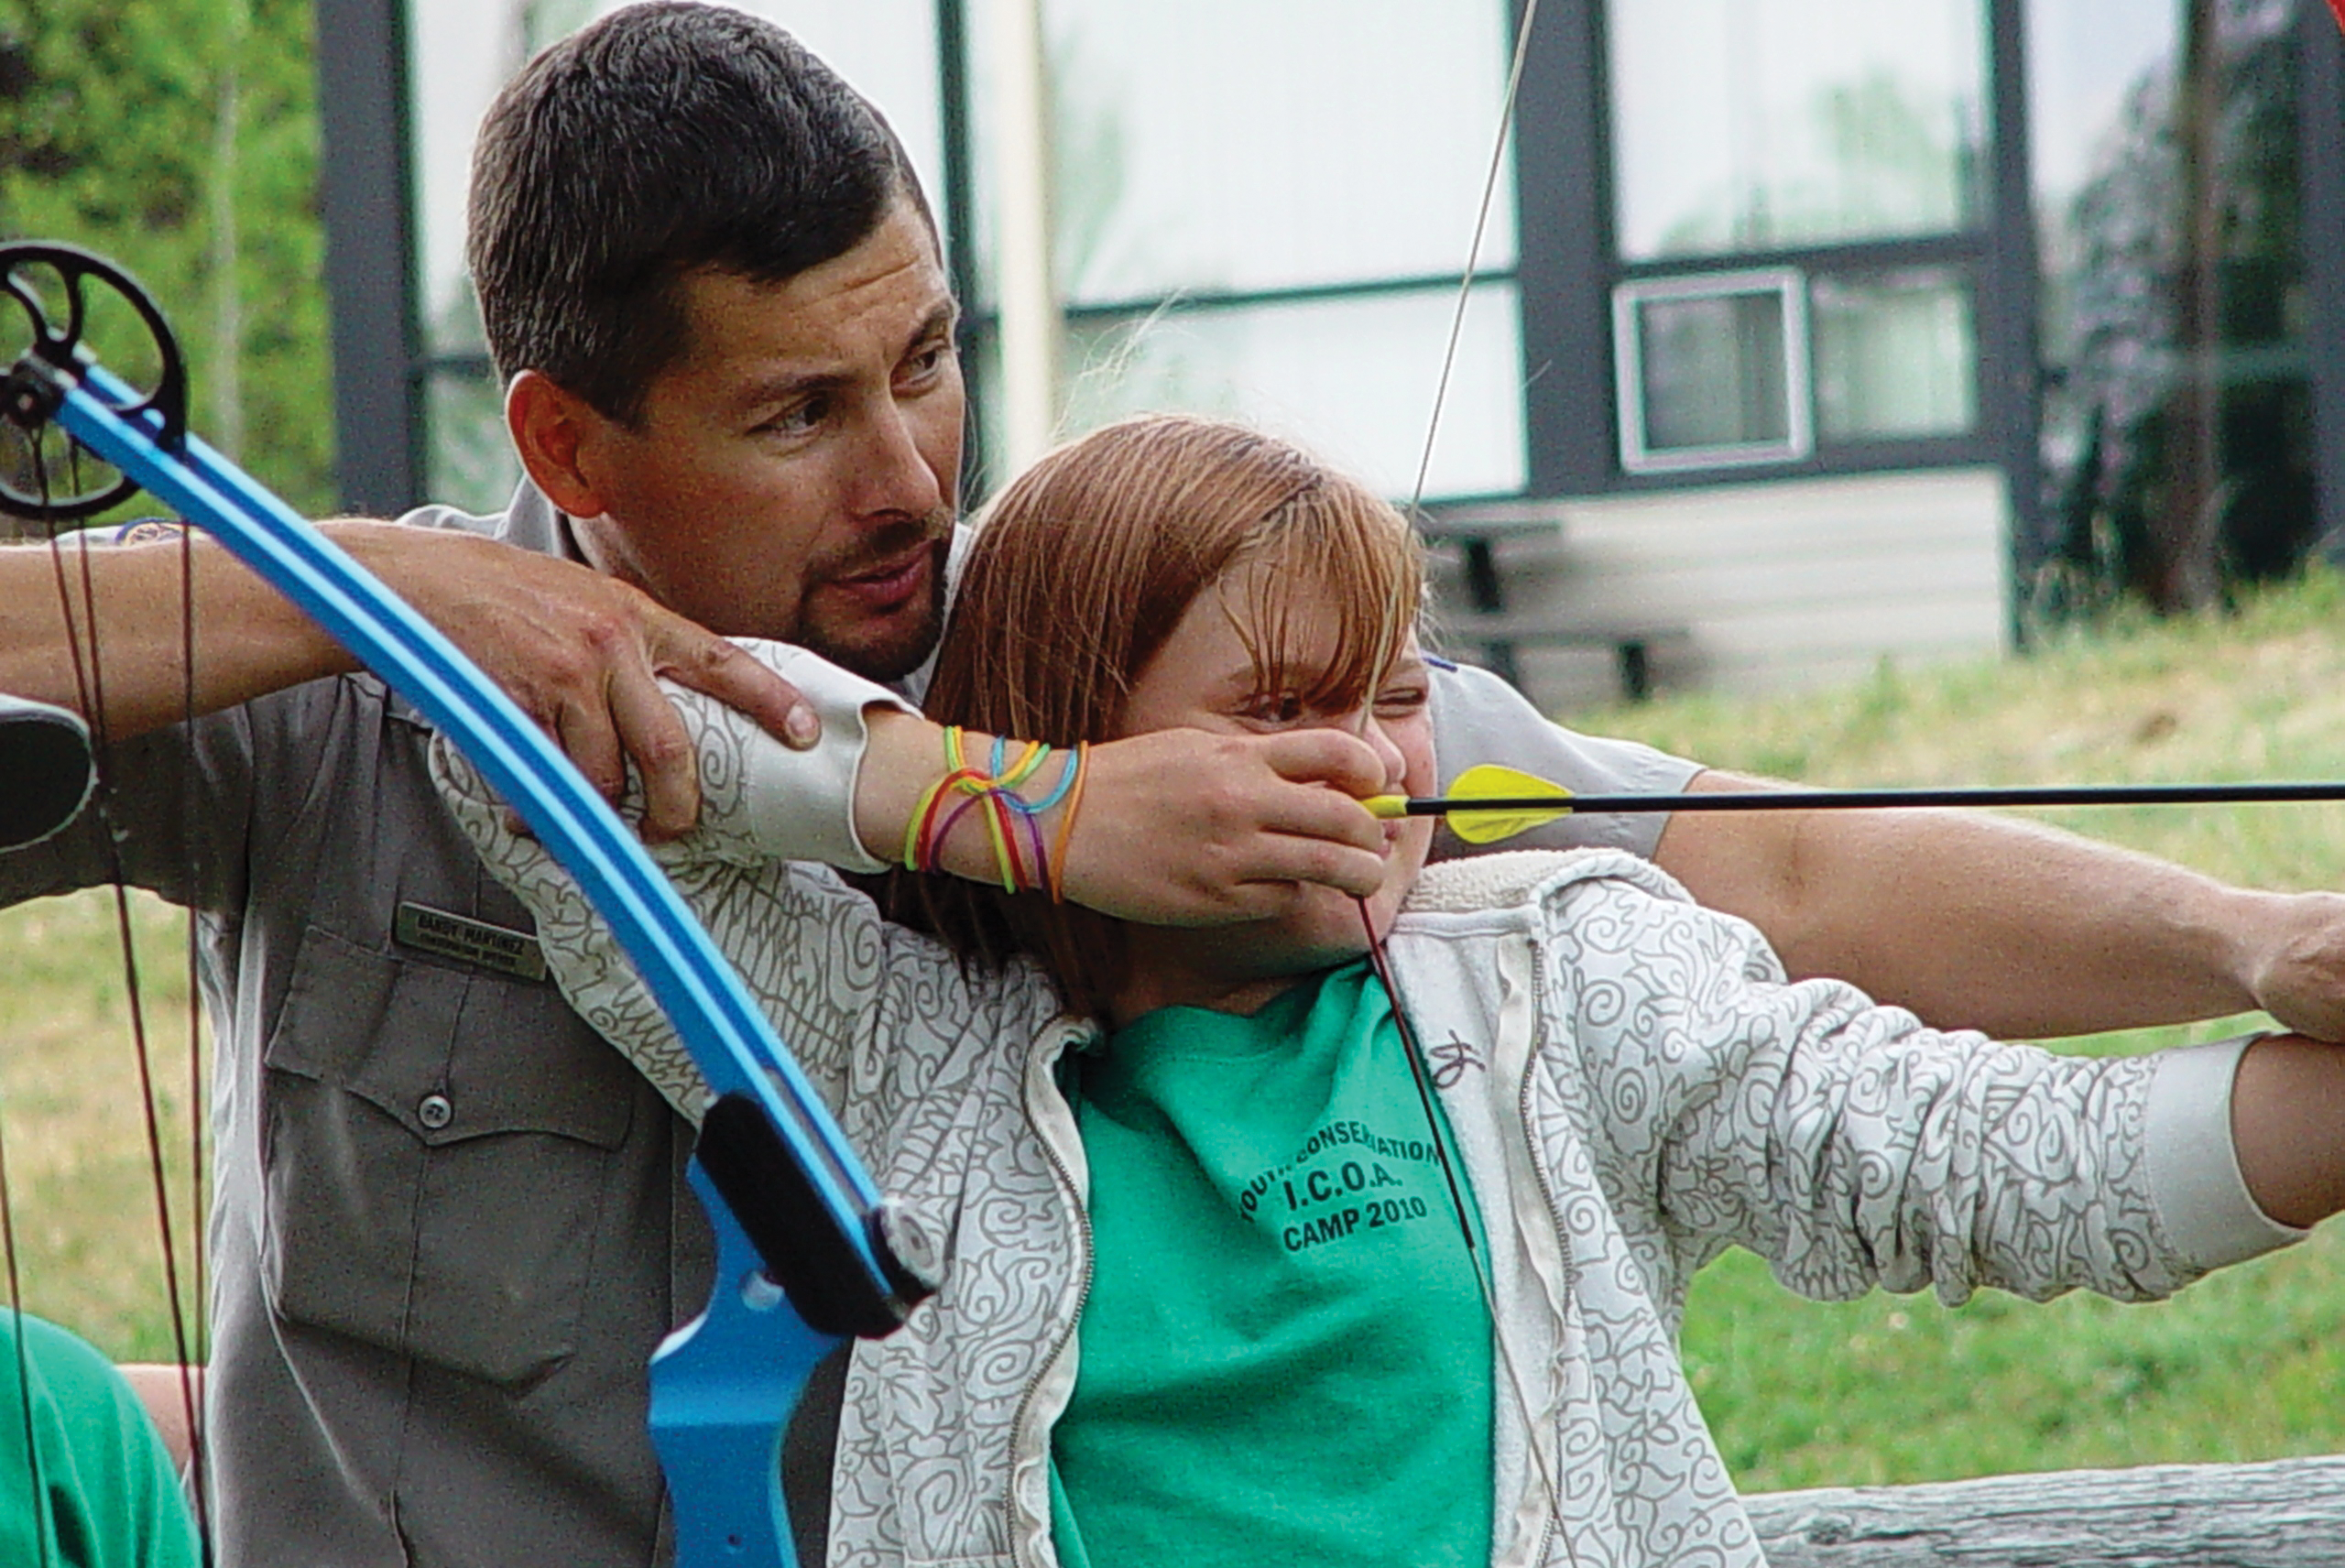 an IDFG  conservation officer shows a girl how to handle a bow and arrow at a hunter education class August 2010